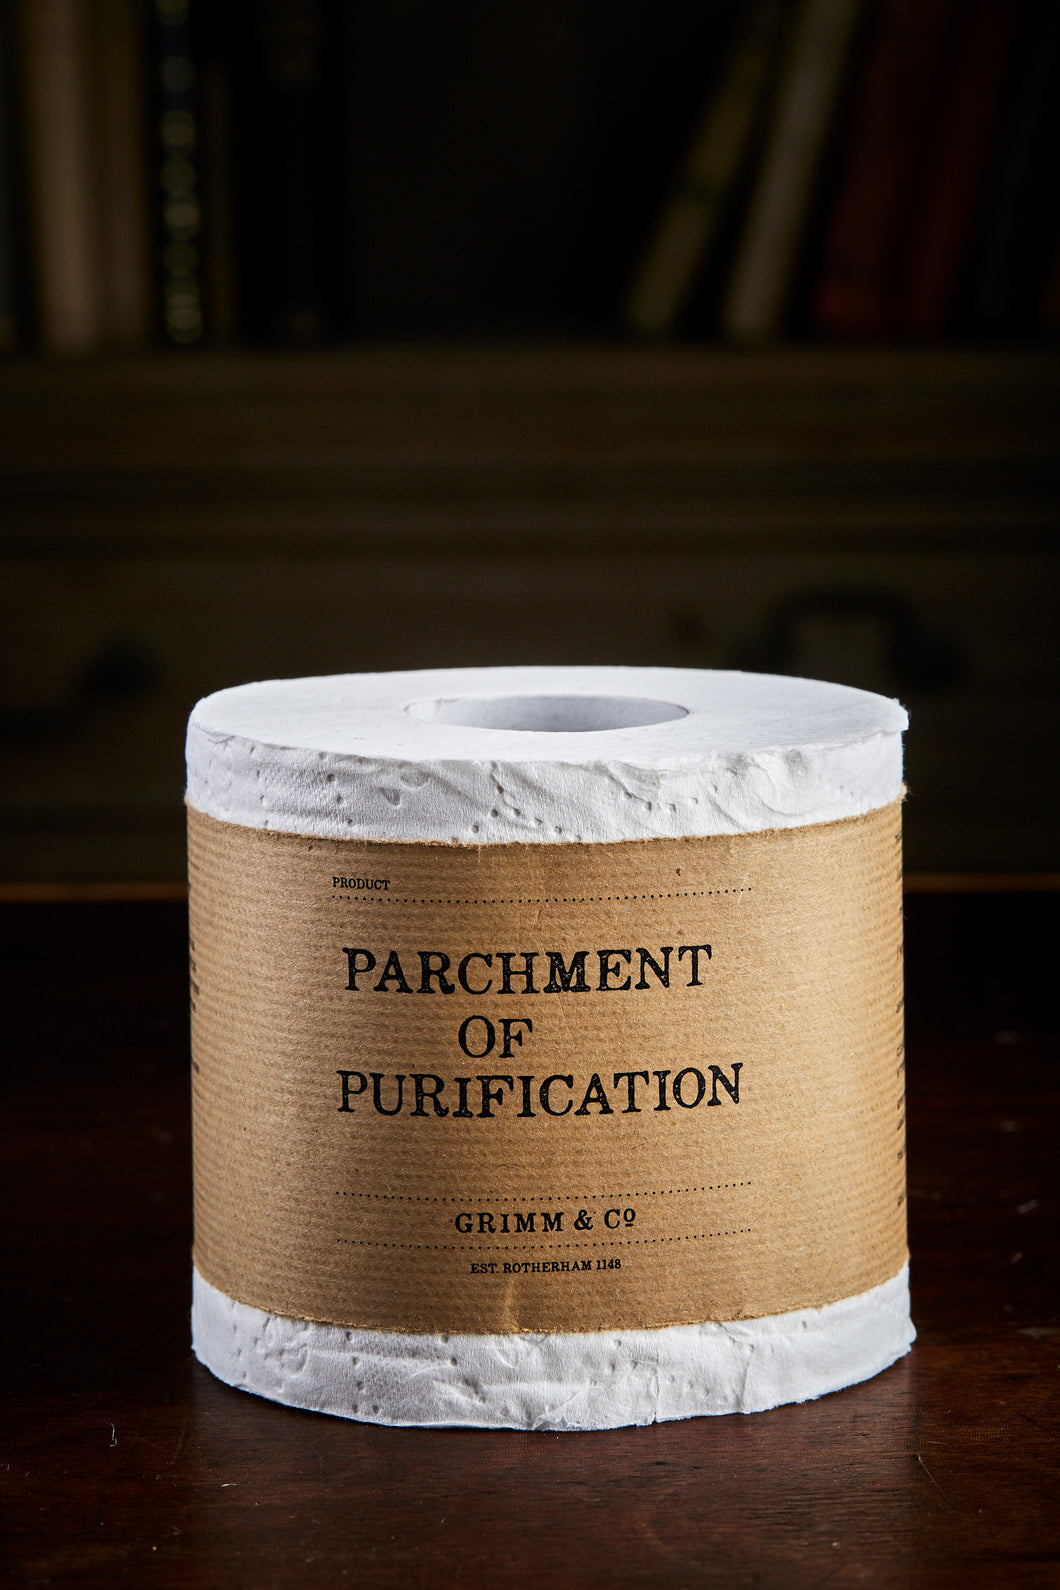 Parchment of Purification